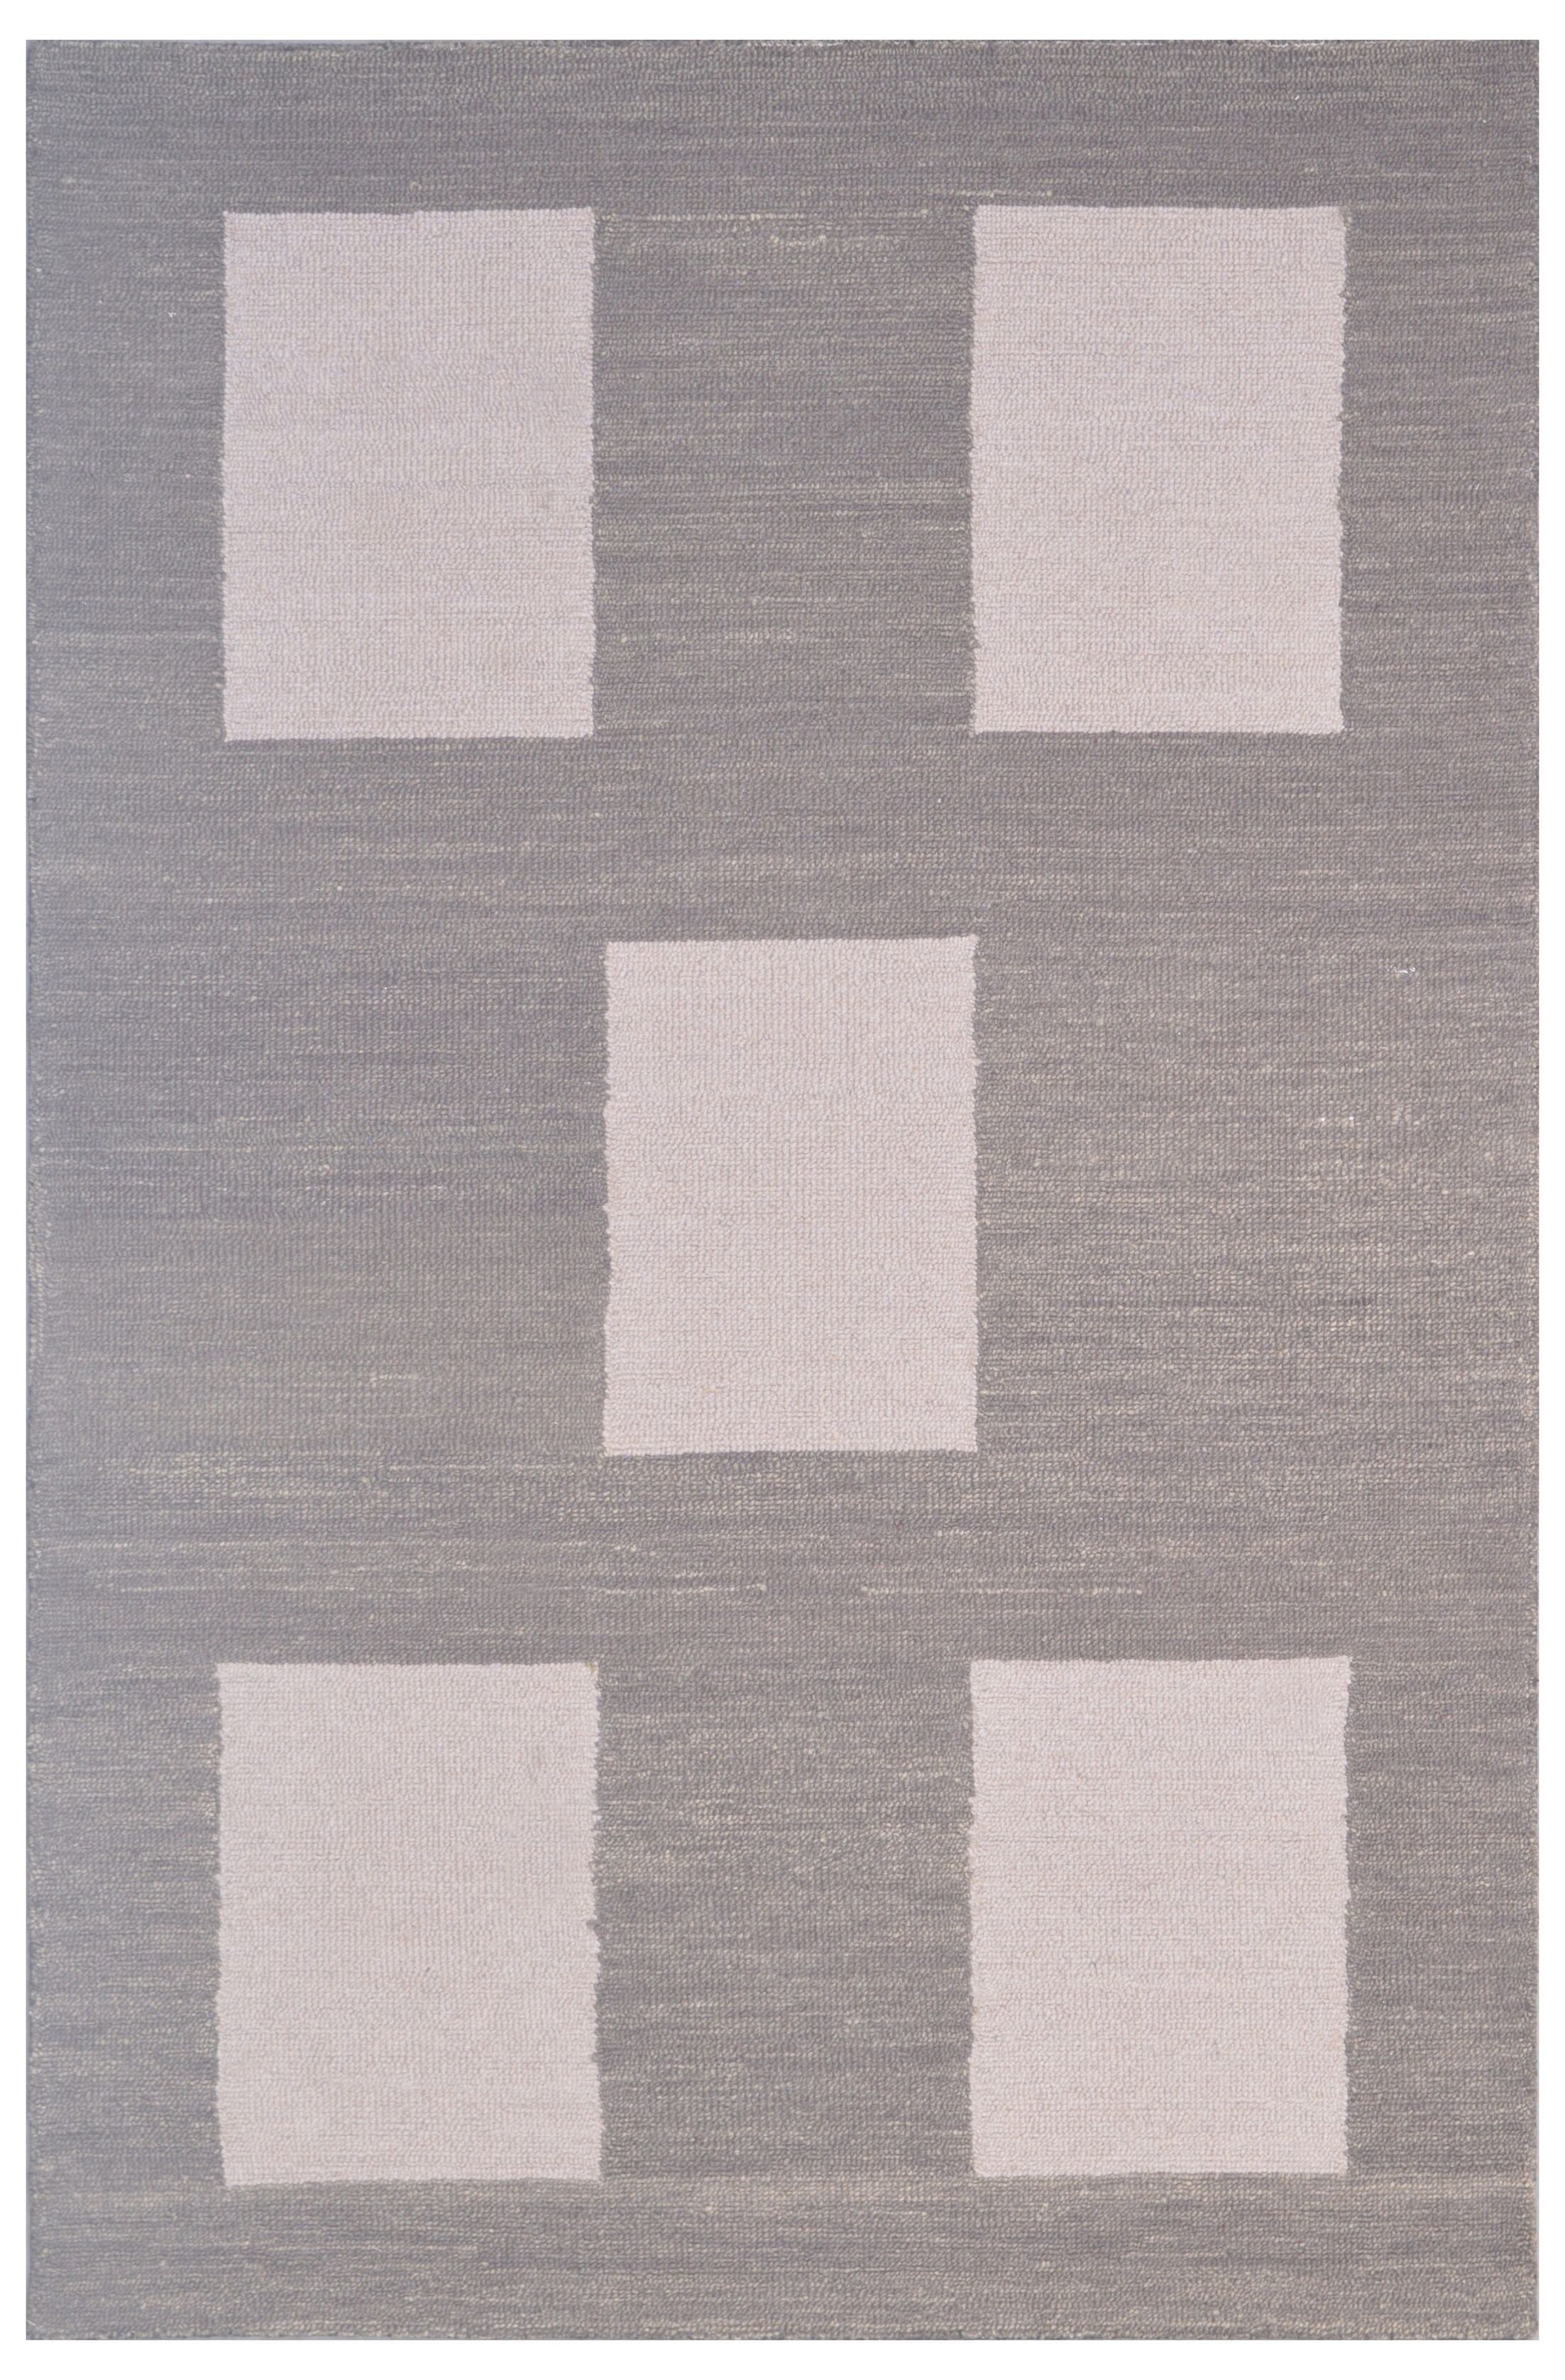 Wool Hand-Tufted Beige/Gray Area Rug Rug Size: Rectangle 6' x 6'